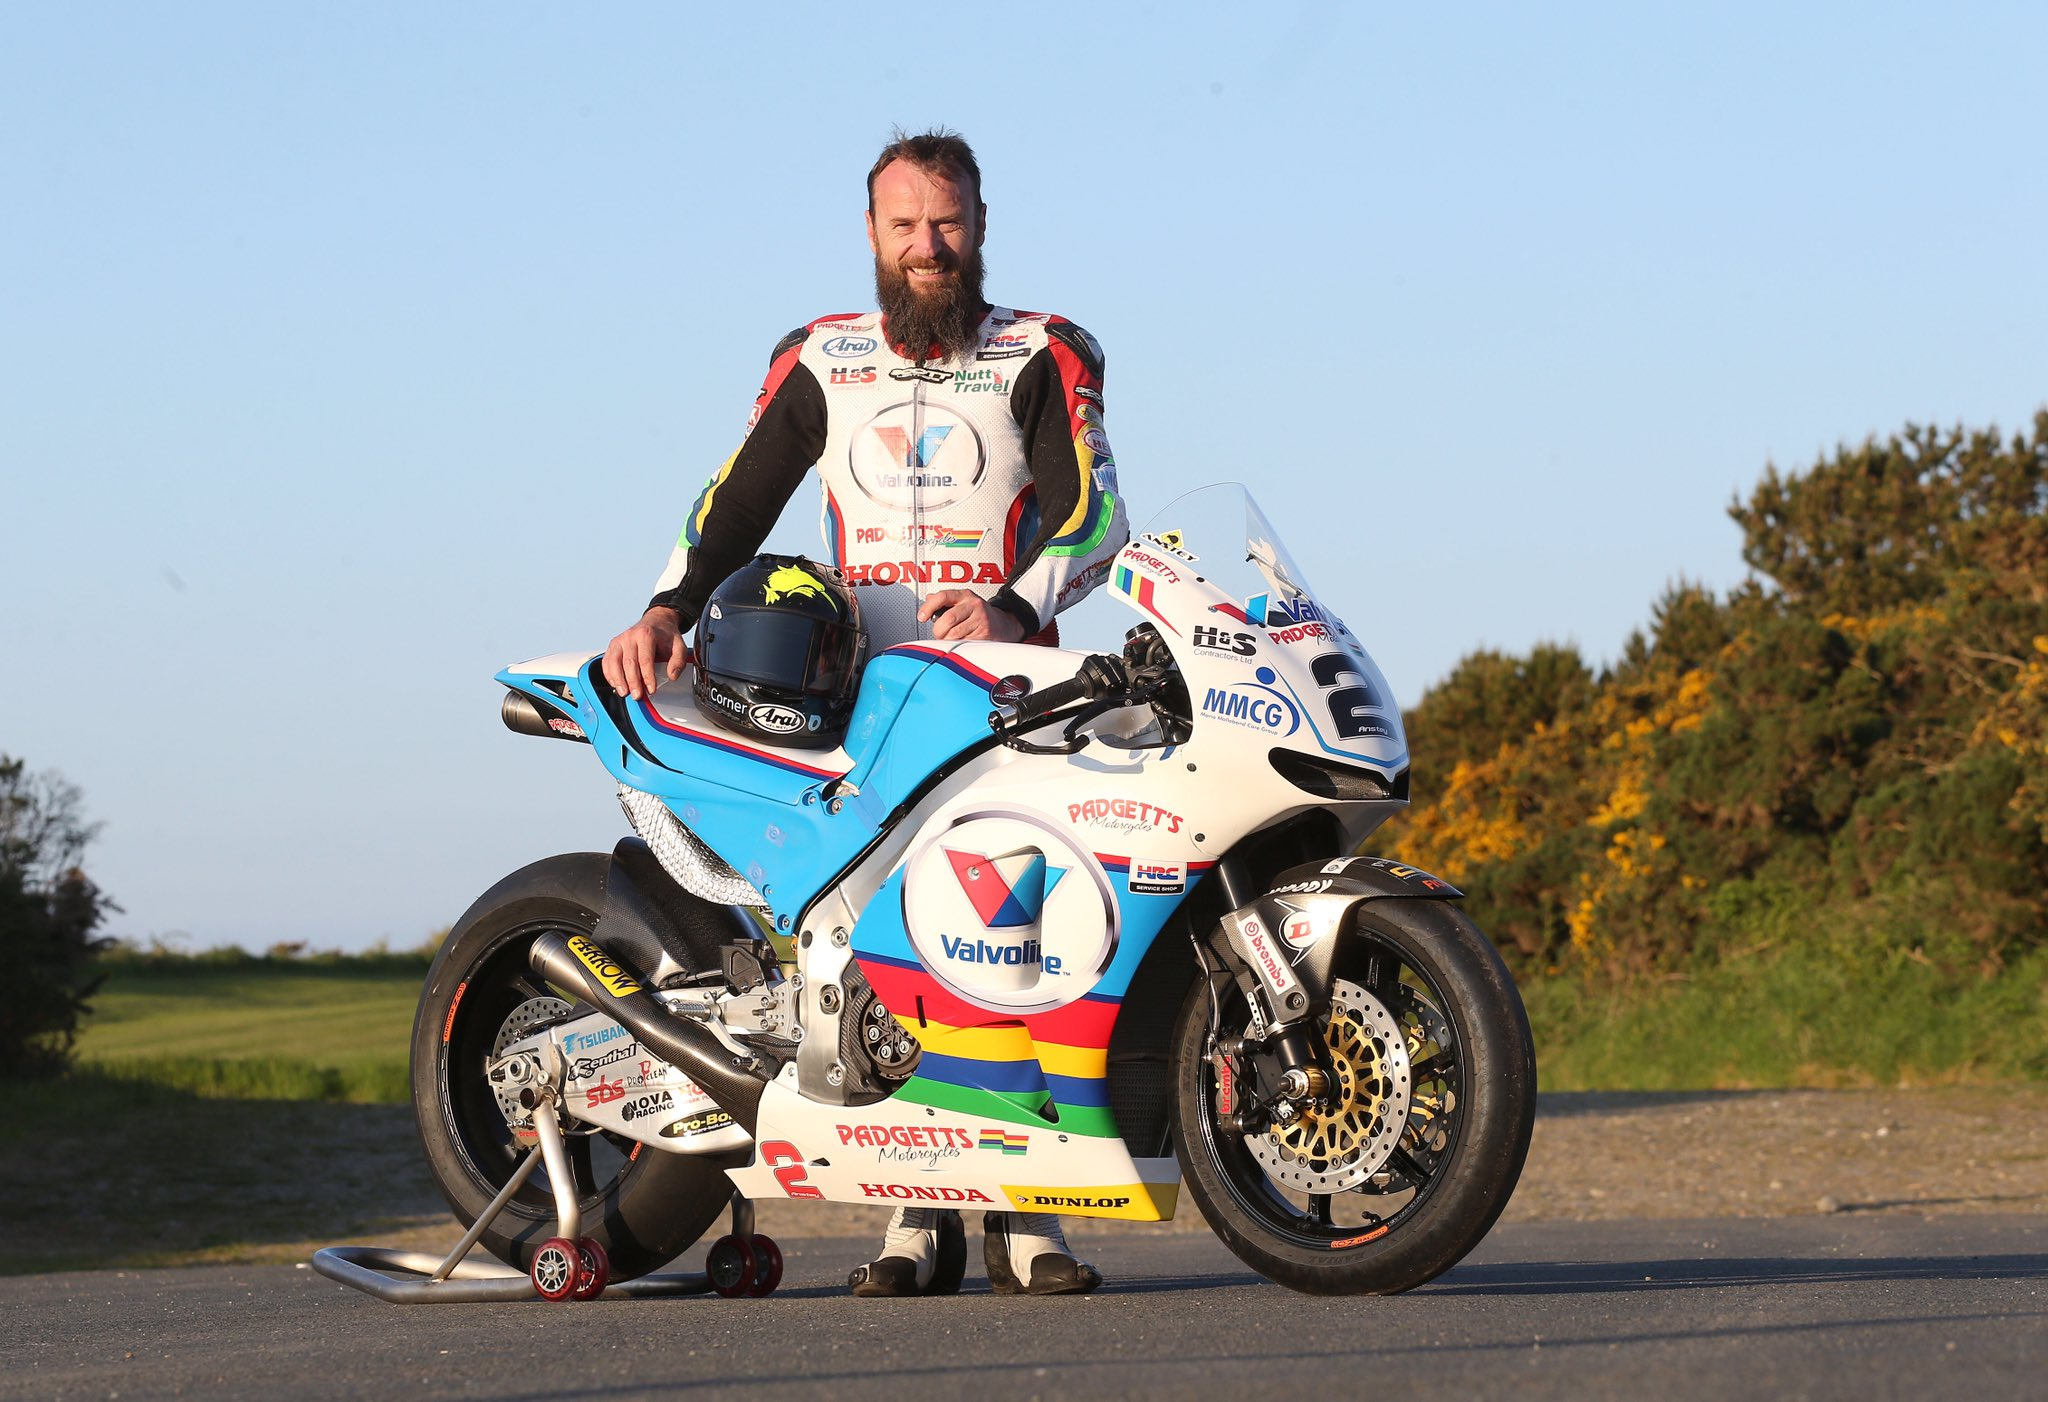 Bruce Anstey and the mighty @PadgettsRacing1 RC213V-S will head out in TT practice tonight! Can't wait to hear that! https://t.co/Esu7QH44Op